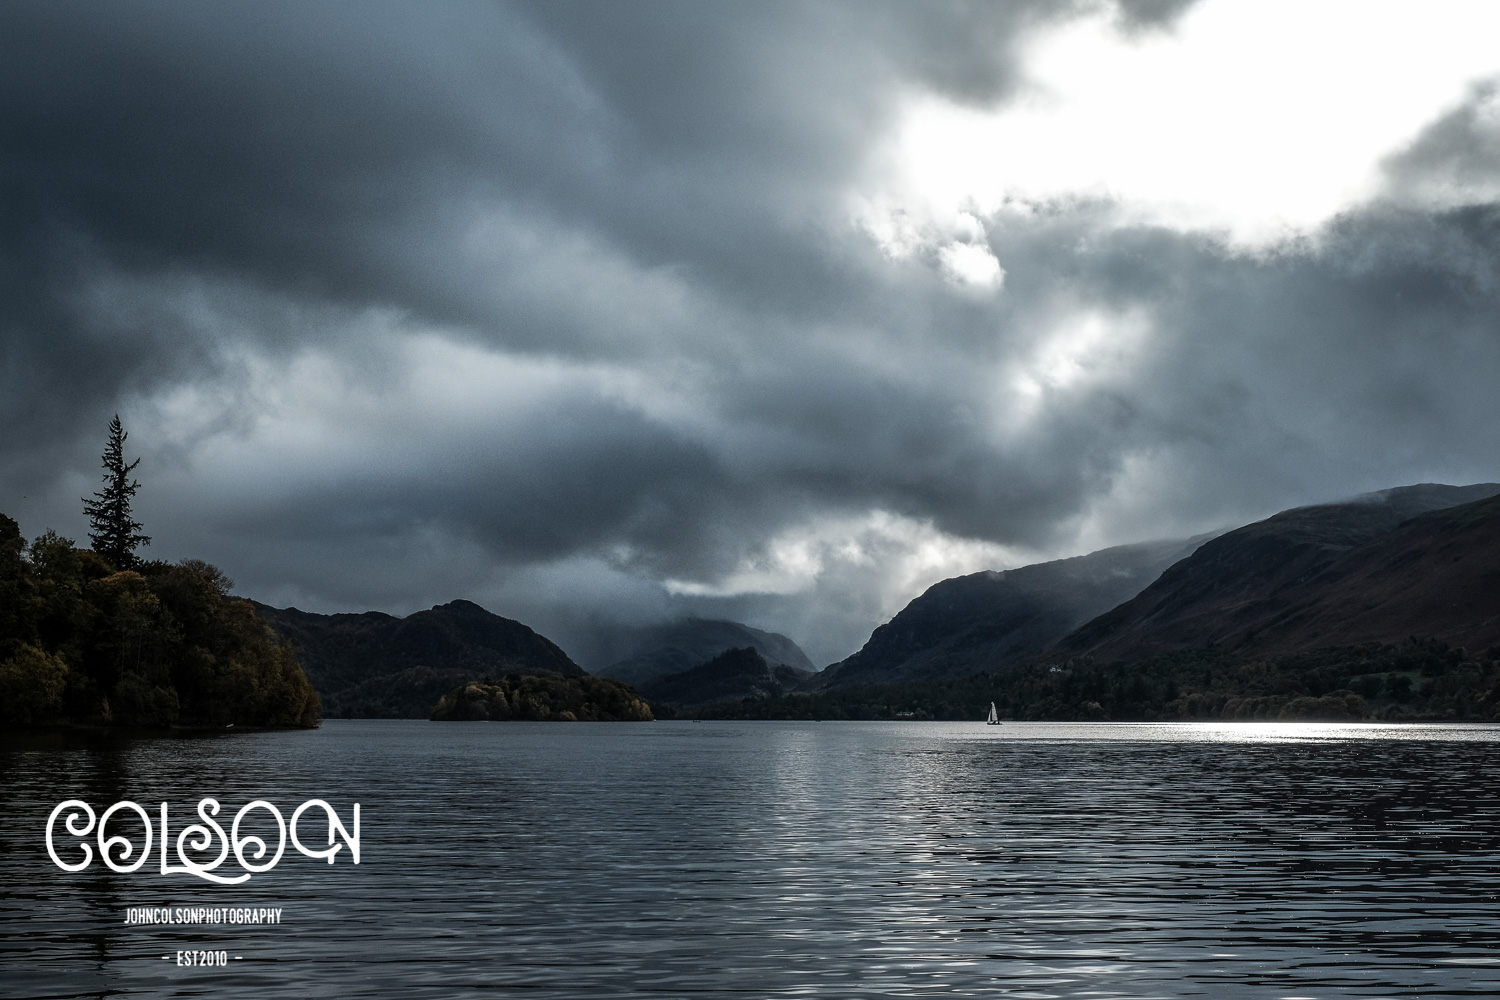 The Lake District. Truly one of the most magical places on earth.